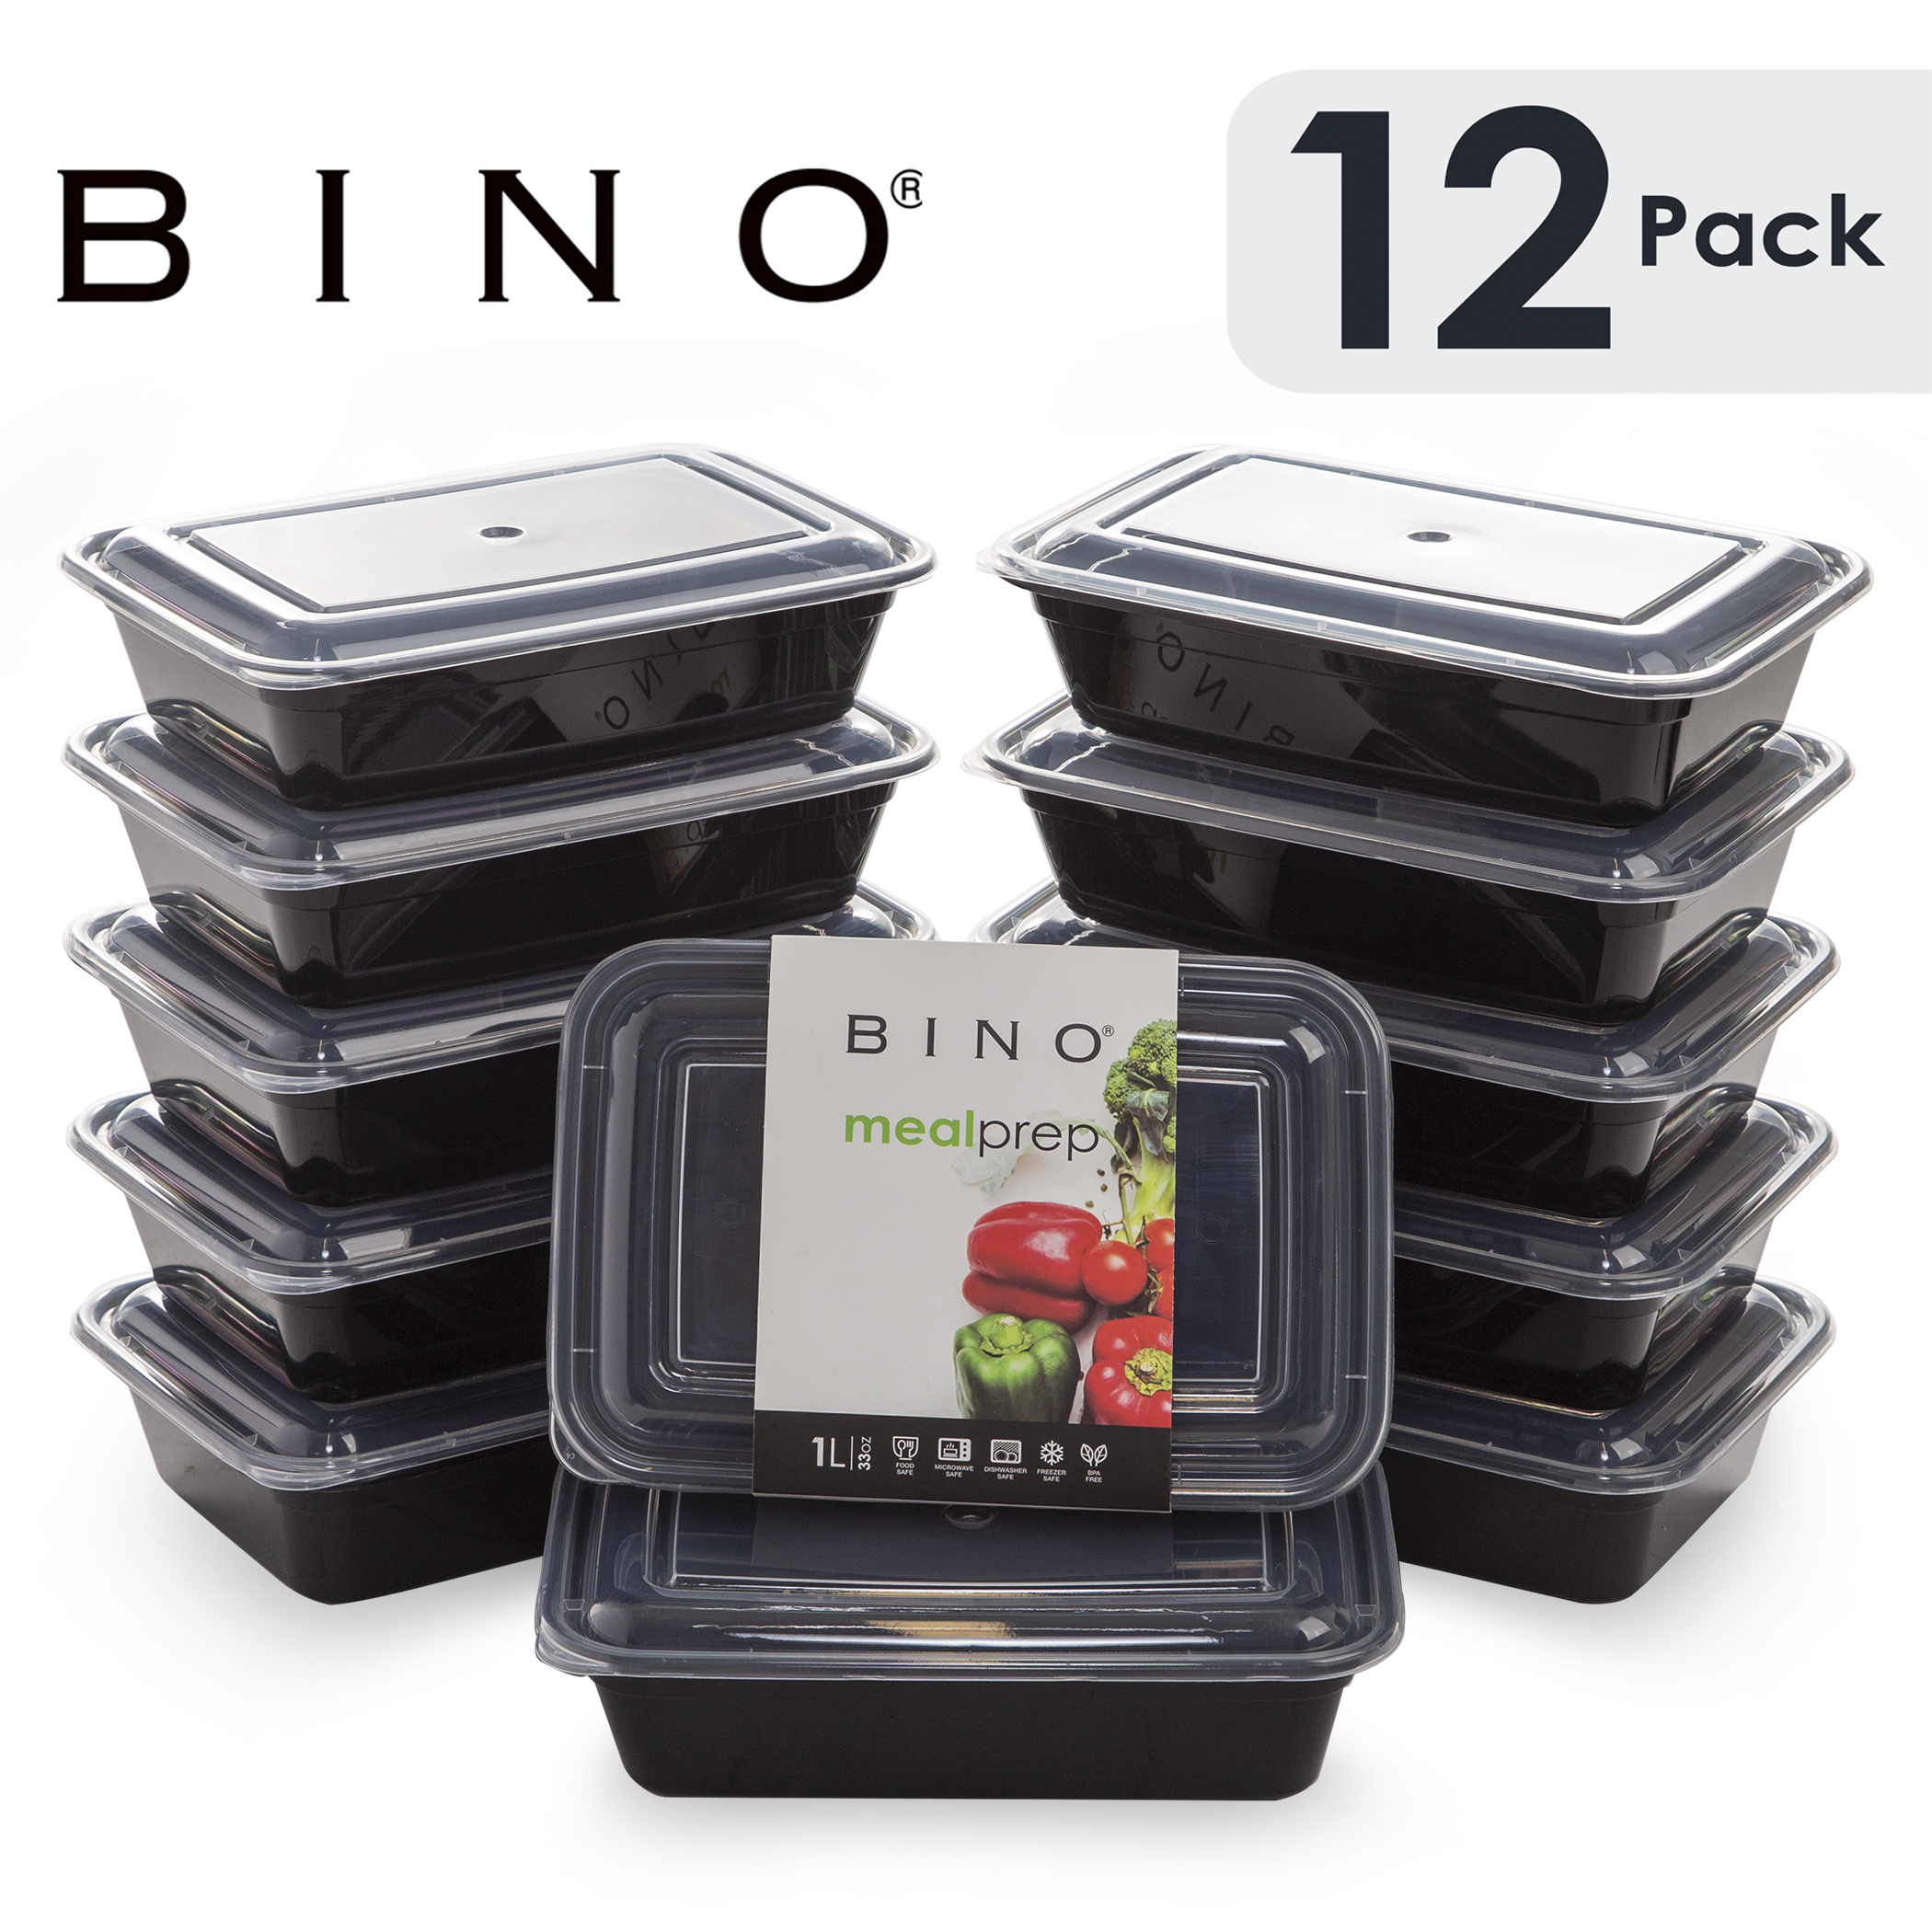 Bino Meal Prep Containers With Lids 1 Compartment 33 Oz 12 Pack Bento Box Lunch Containers For Adults Food Containers Meal Prep Food Prep Containers Tupperware Set Walmart Com Walmart Com